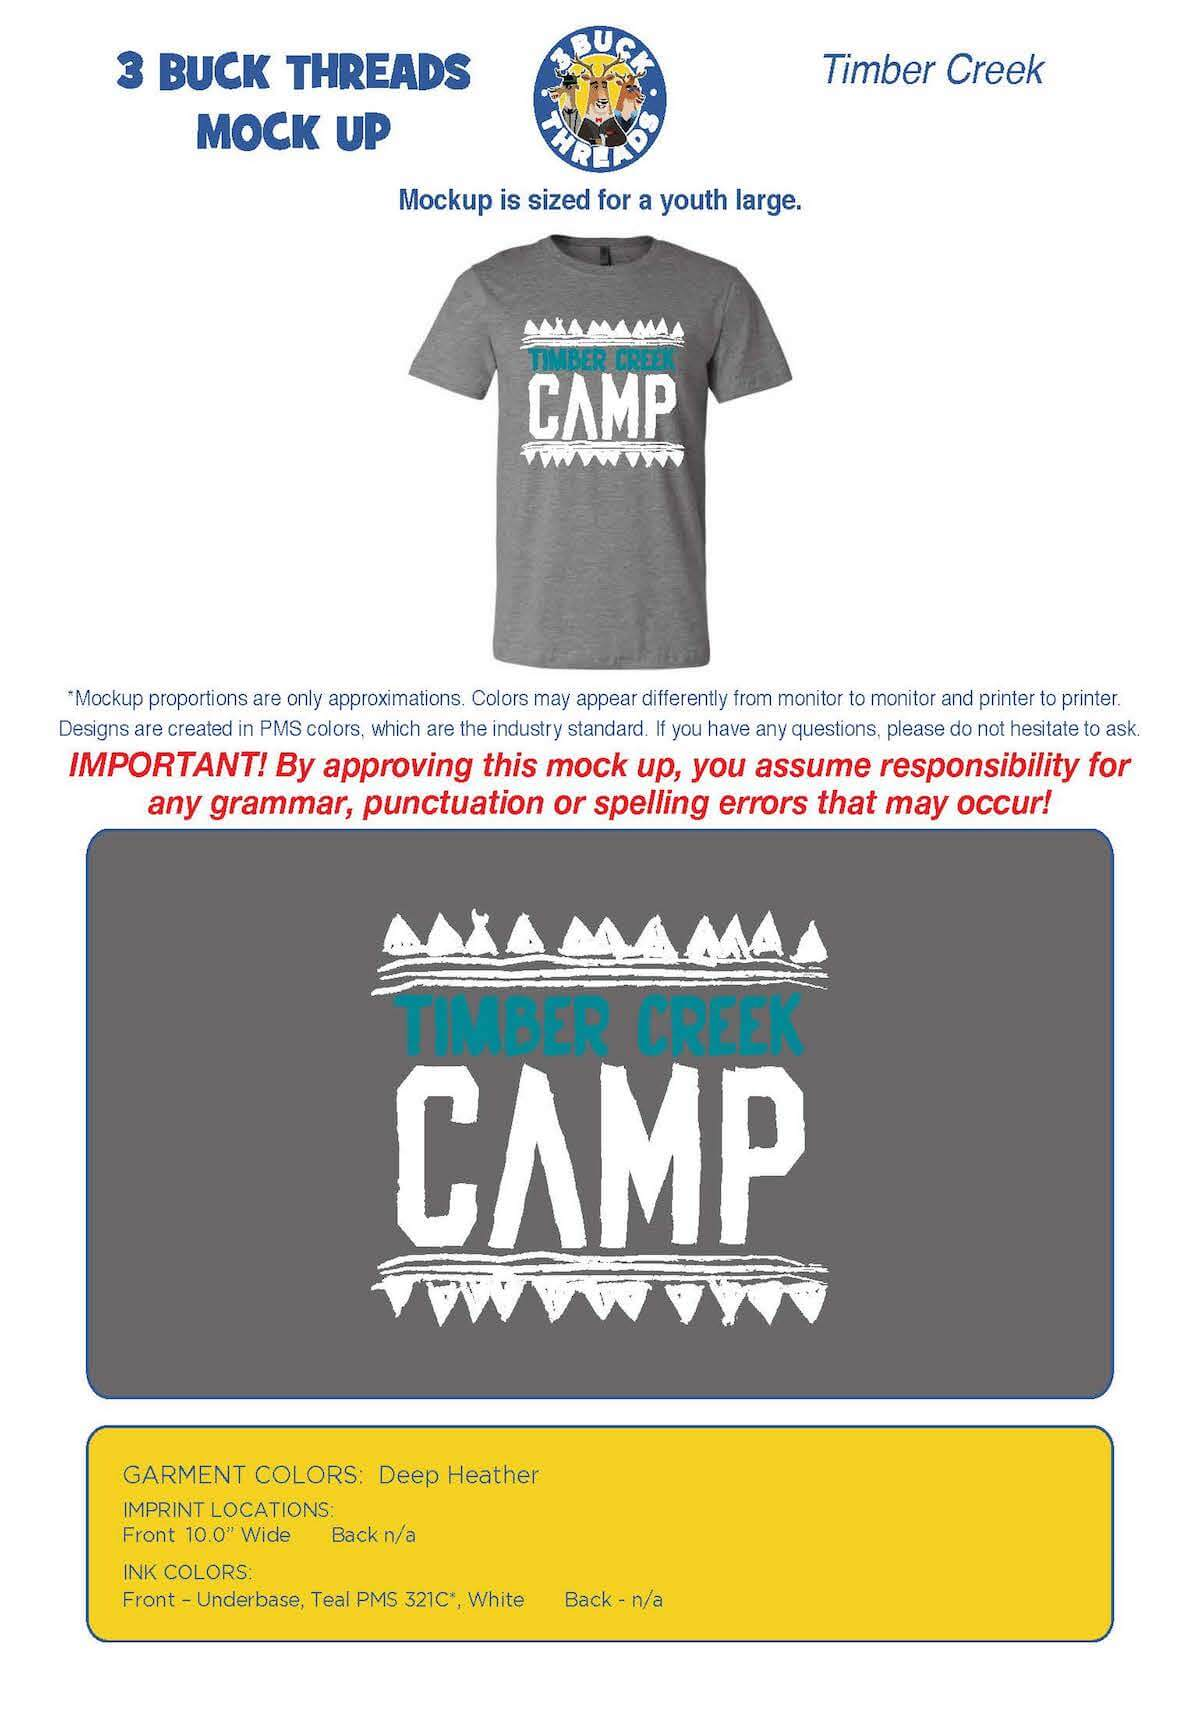 Camps: Clubs